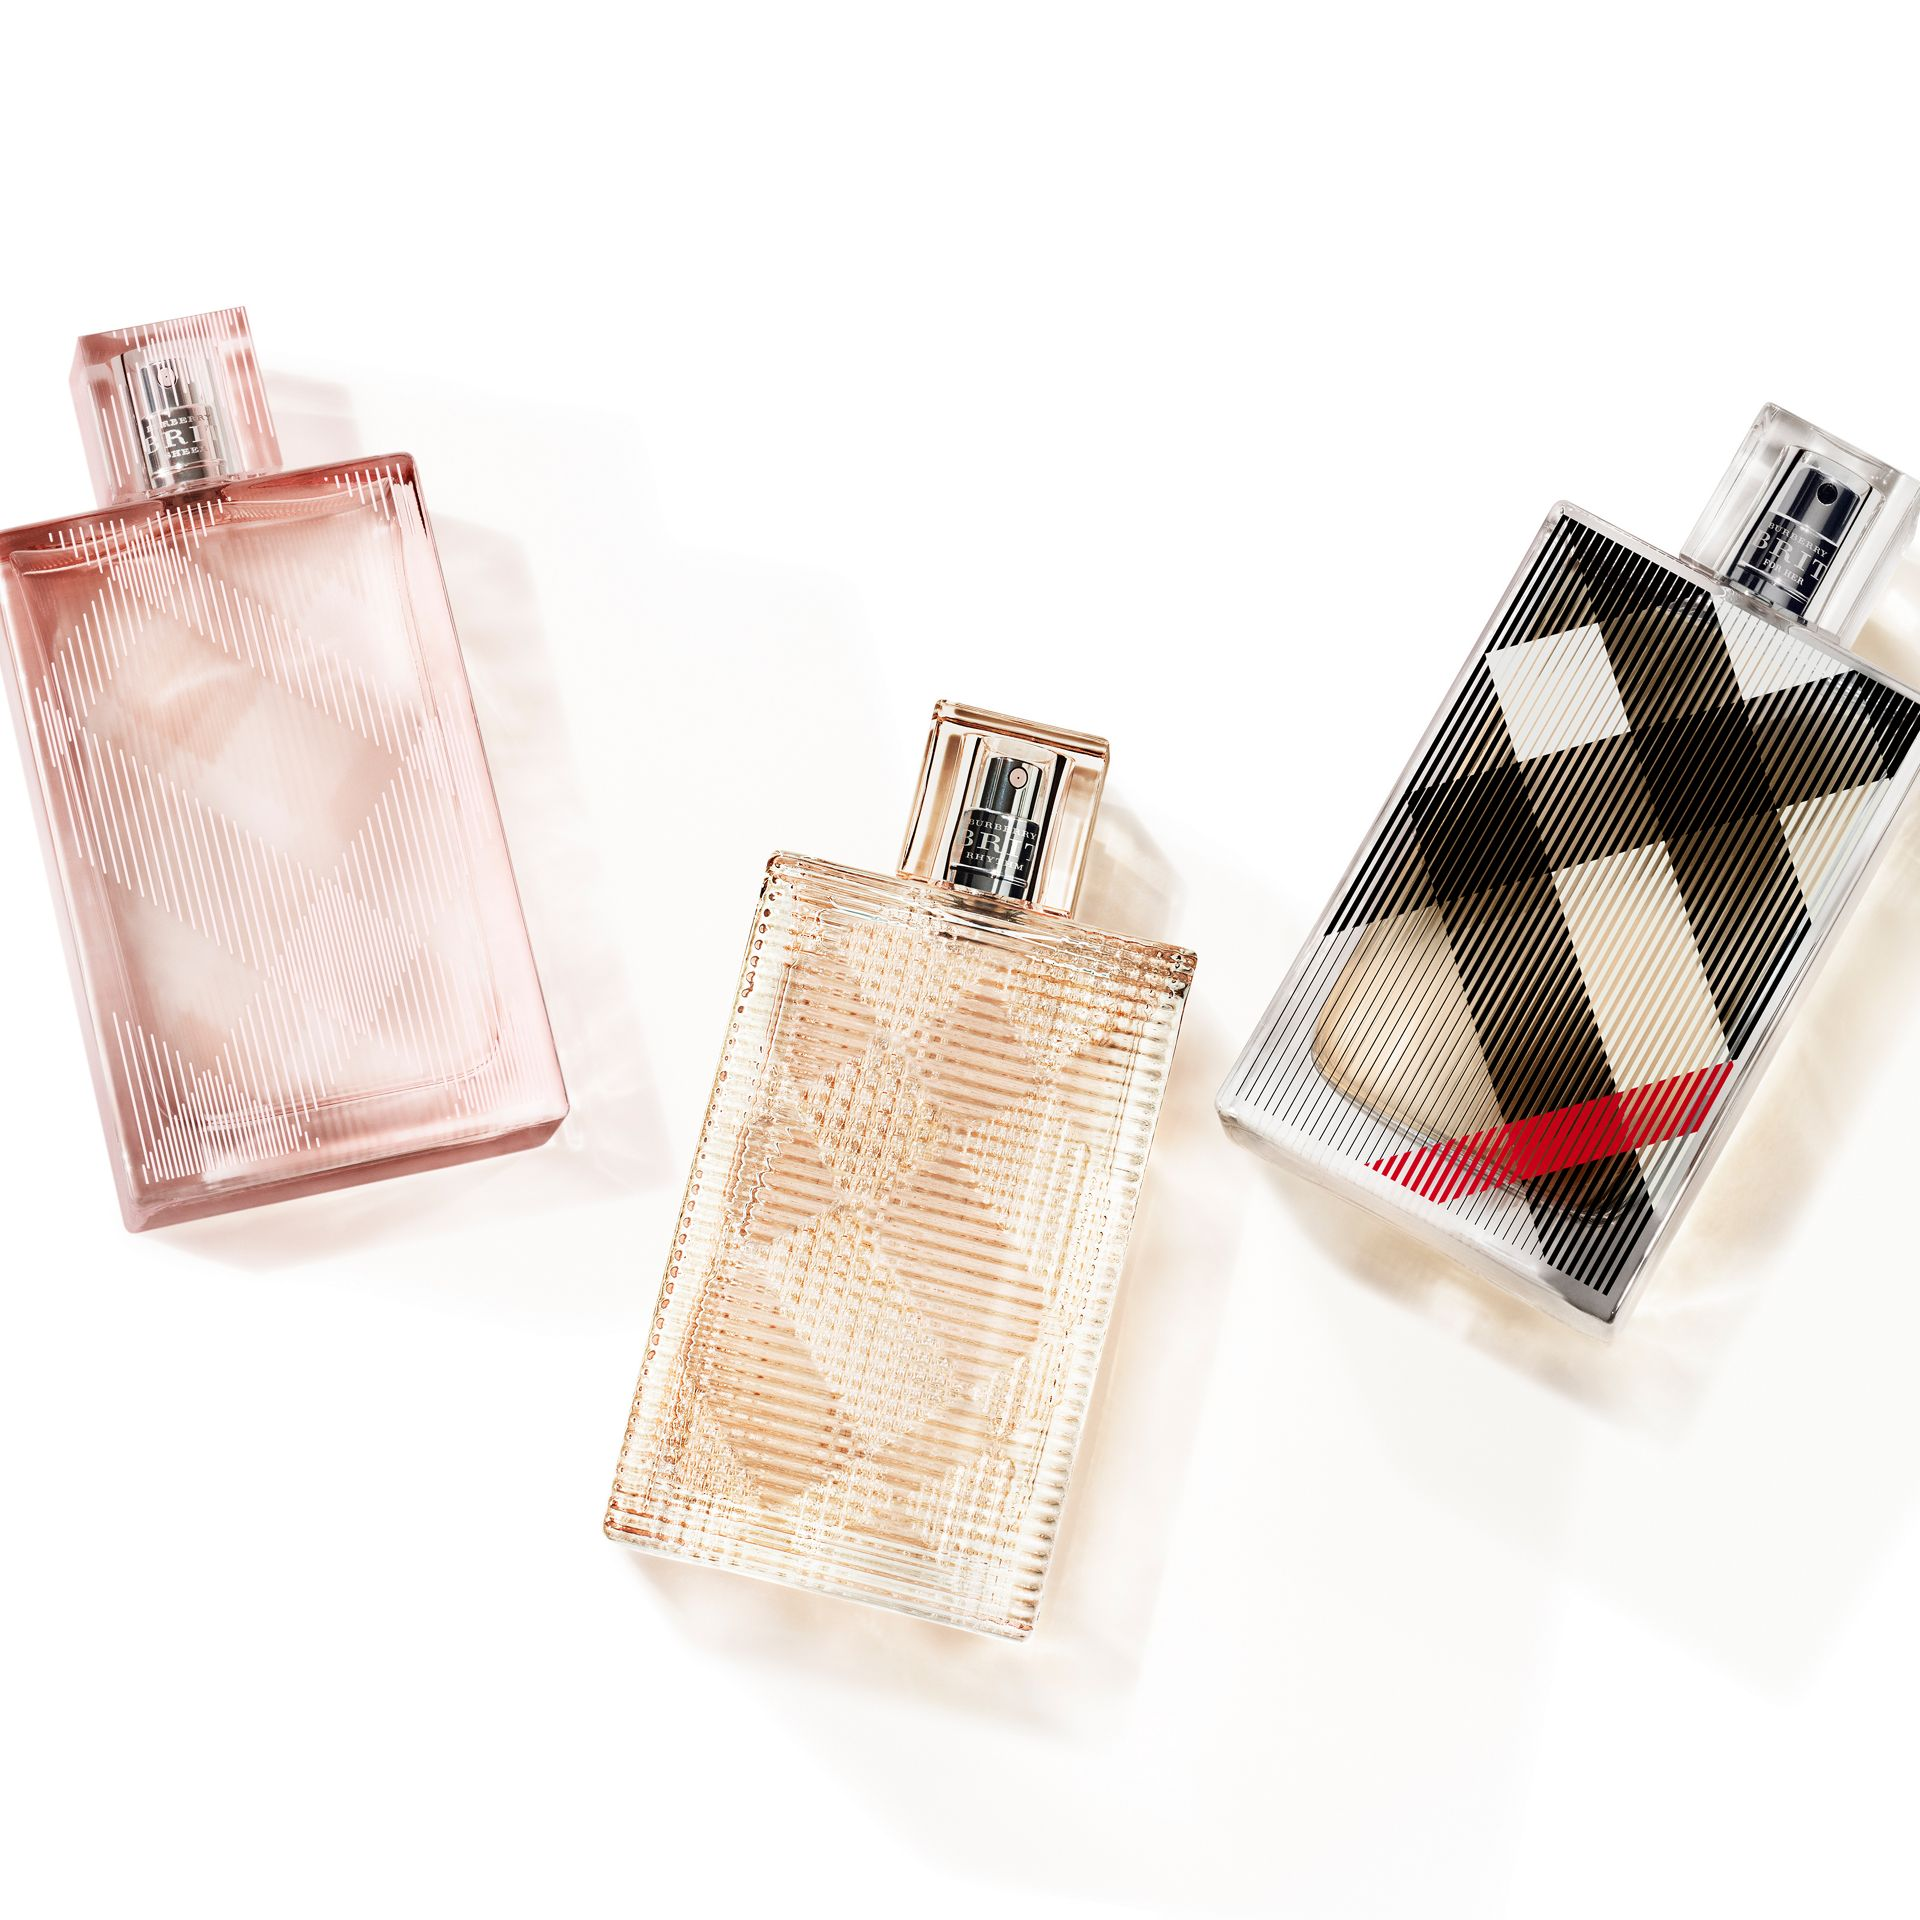 Burberry Brit Sheer for Her Festive Luxury Set in No Colour - Women | Burberry - gallery image 2